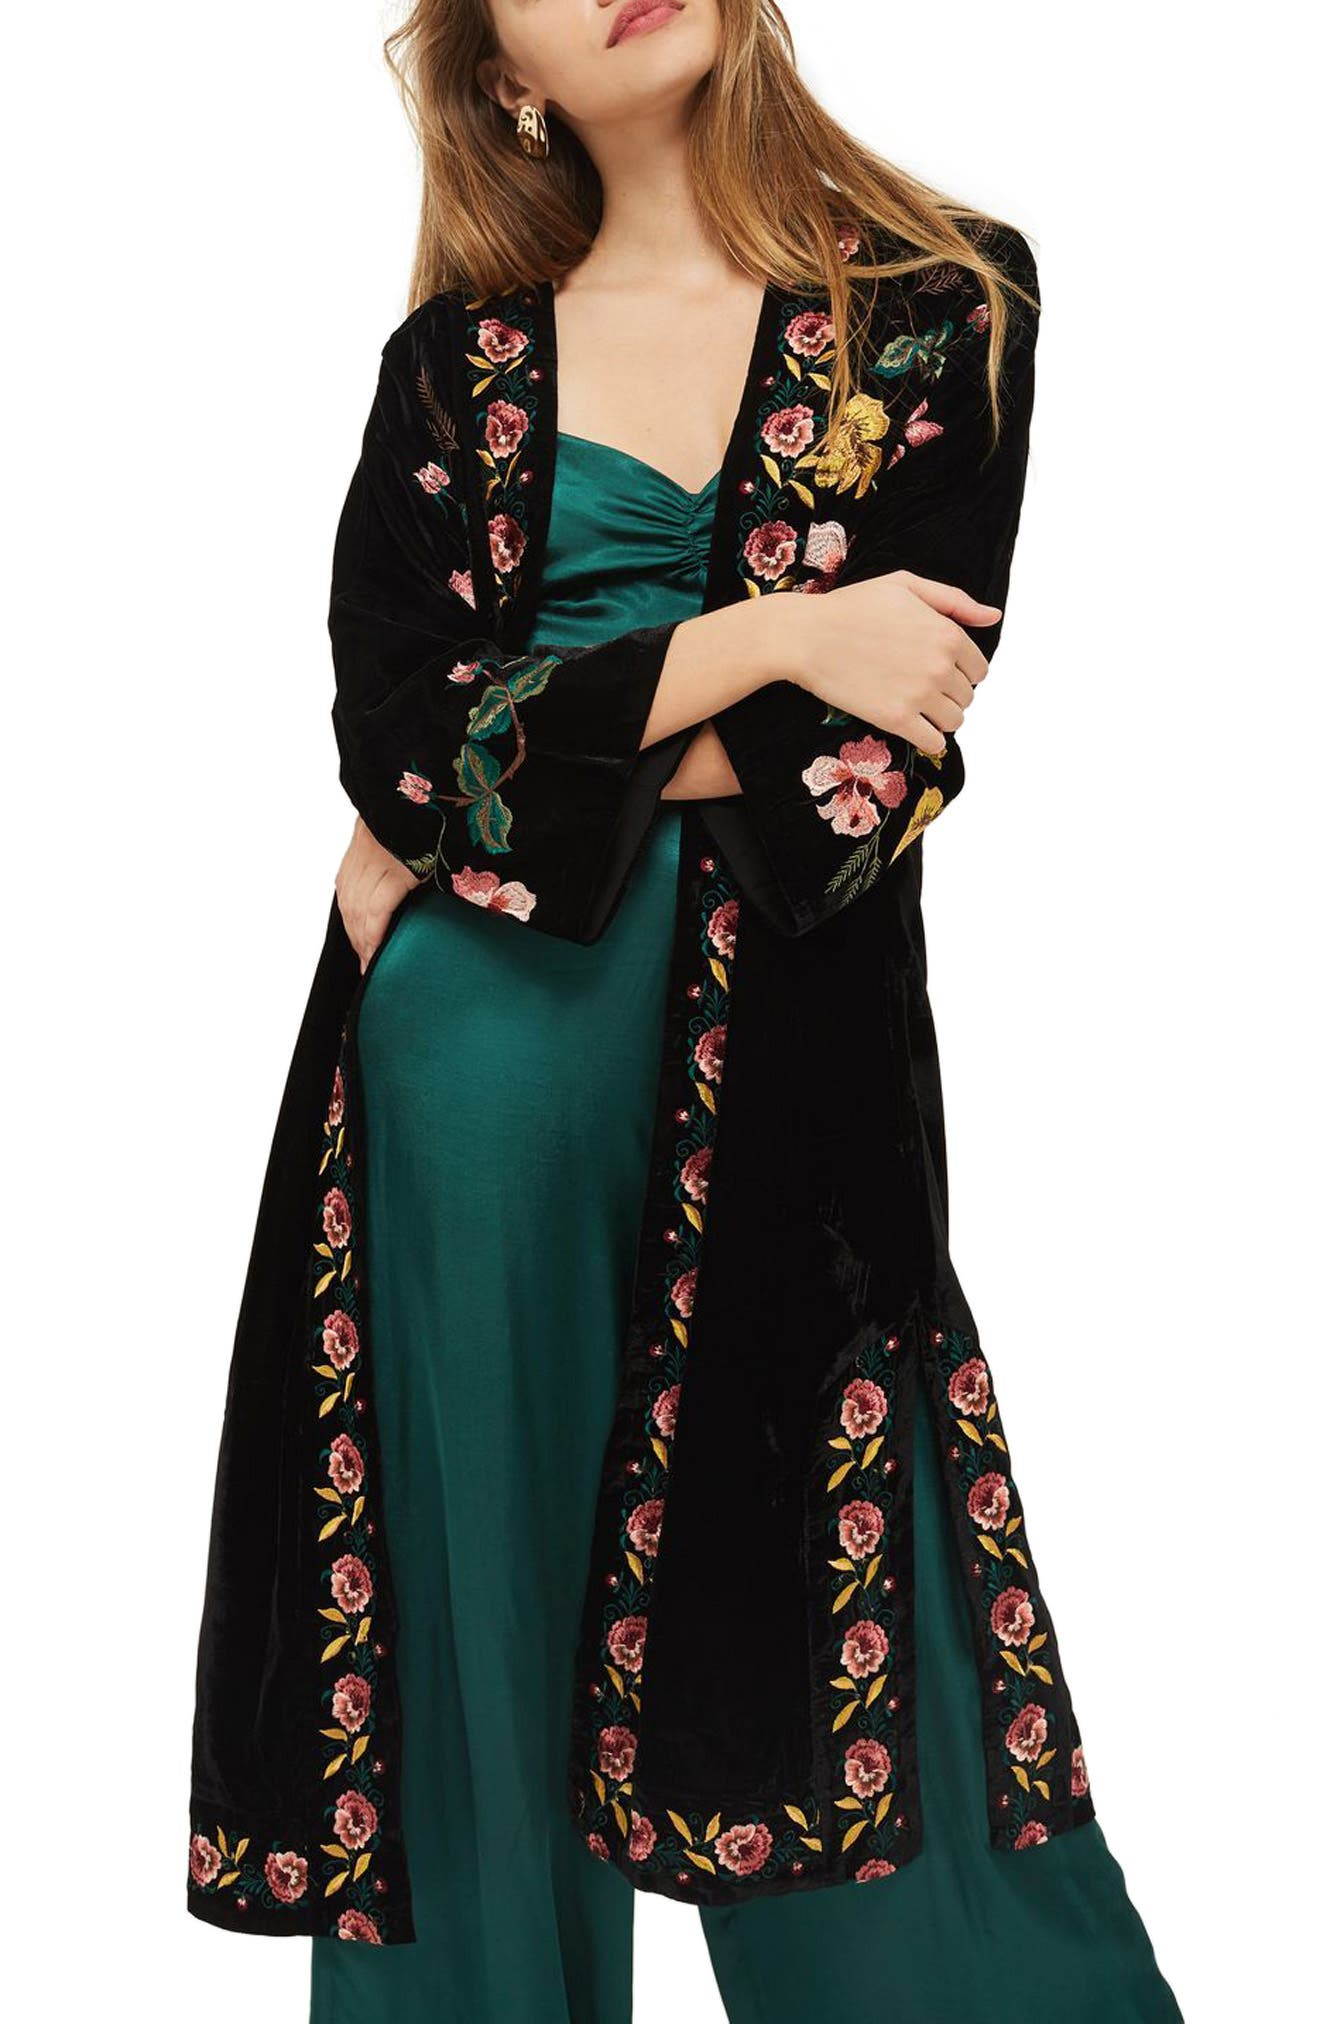 Floral Embroidered Velvet Kimono,                         Main,                         color, Black Multi